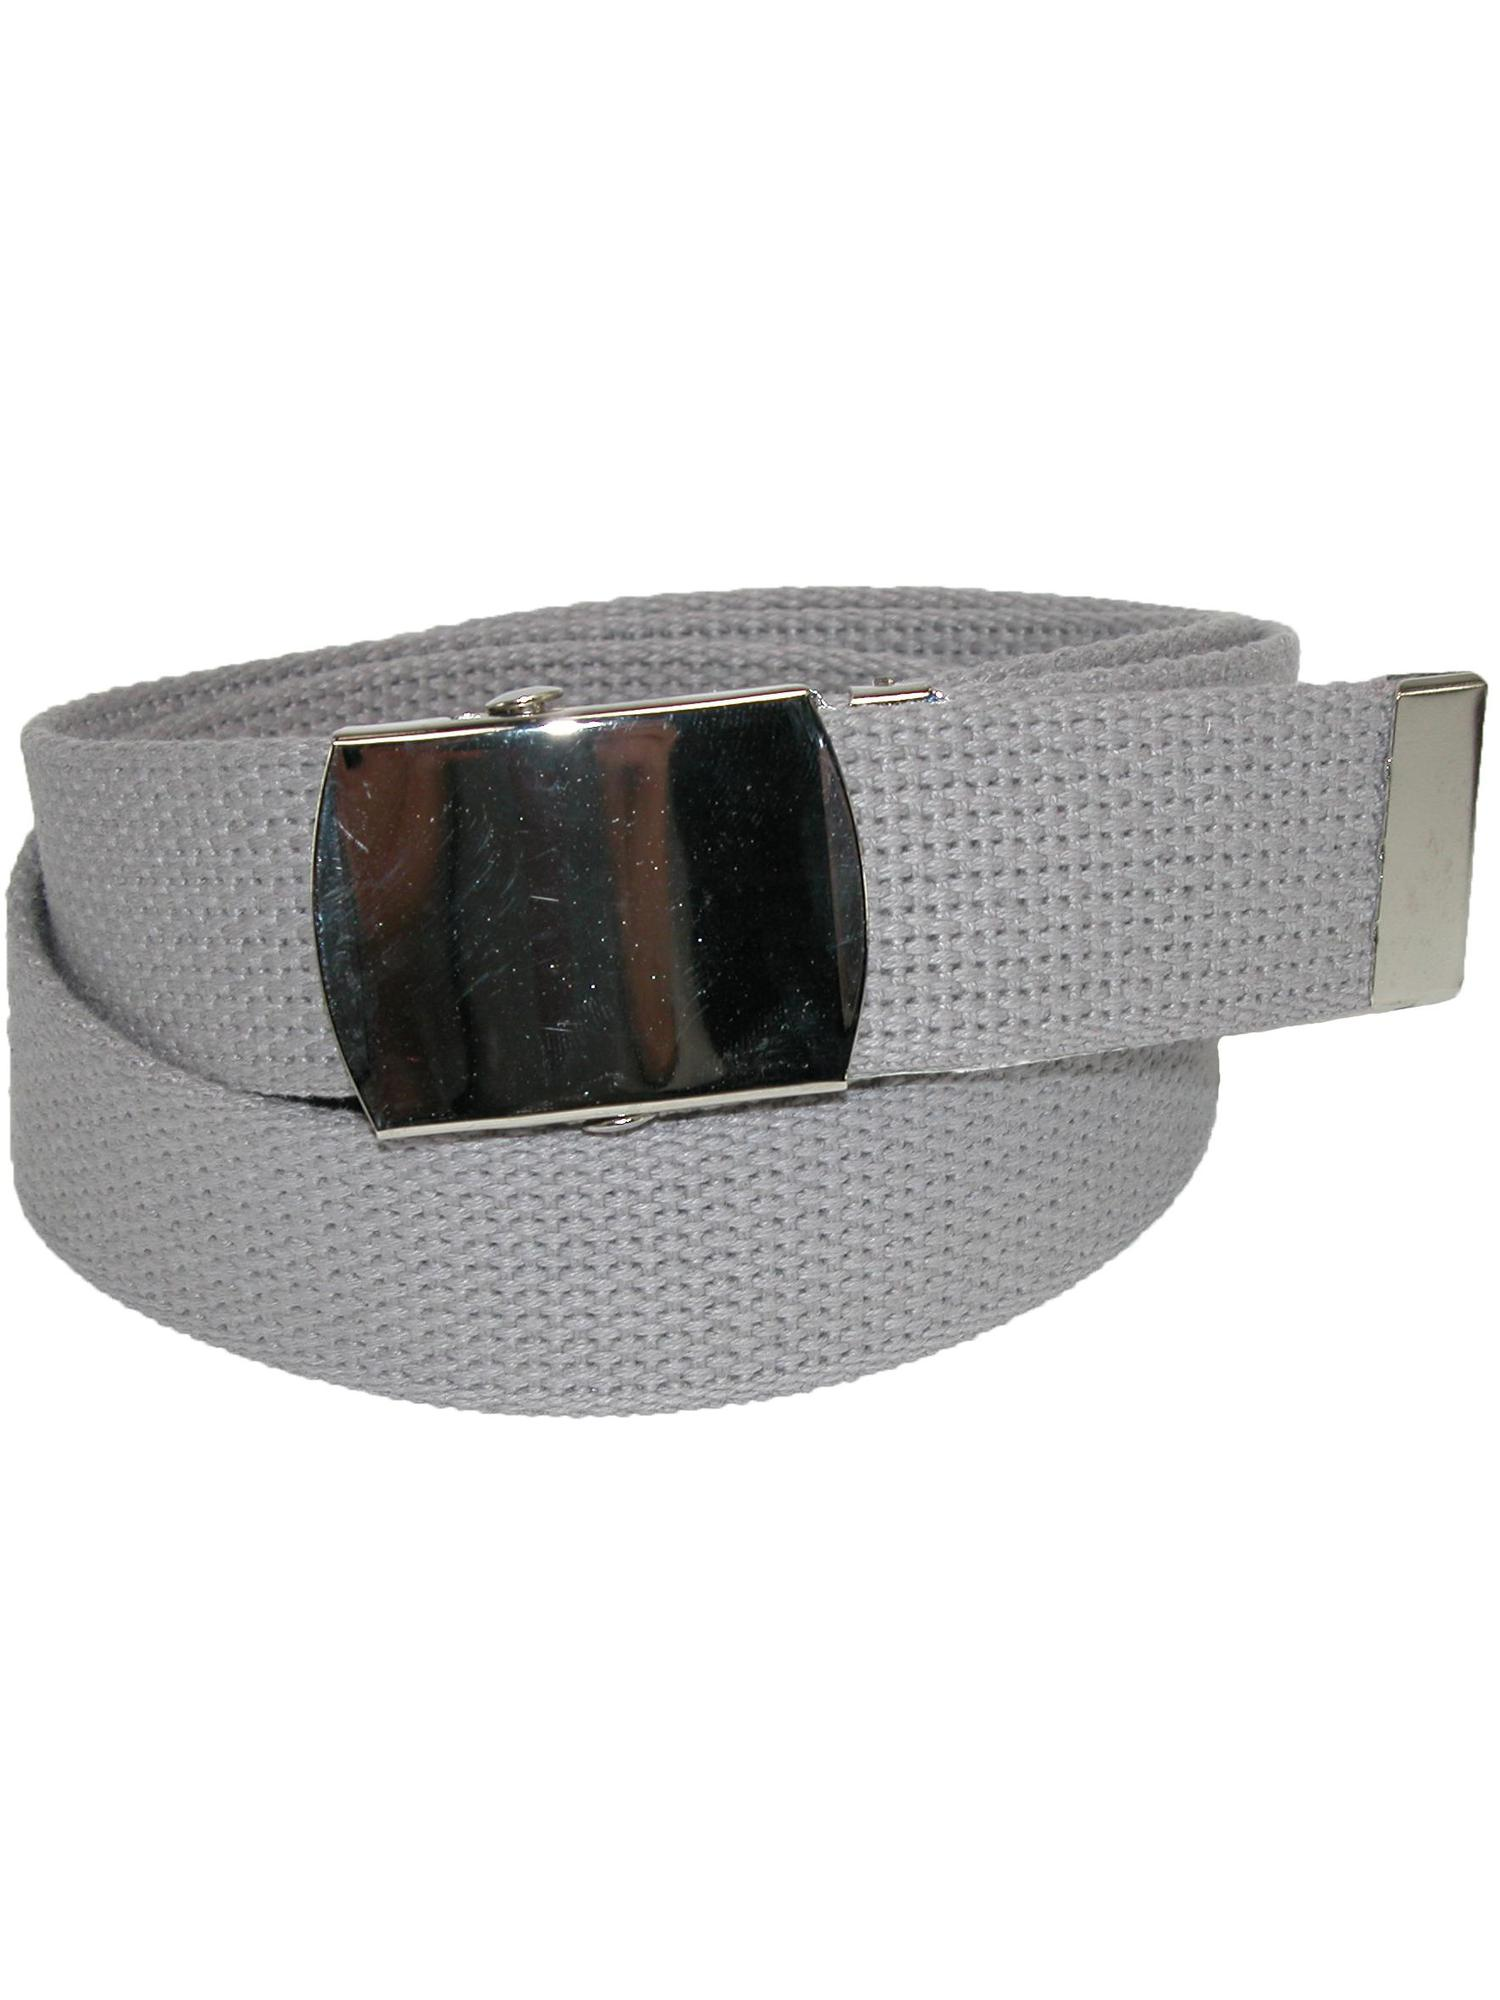 Size one size Cotton Adjustable Belt with Nickel Buckle